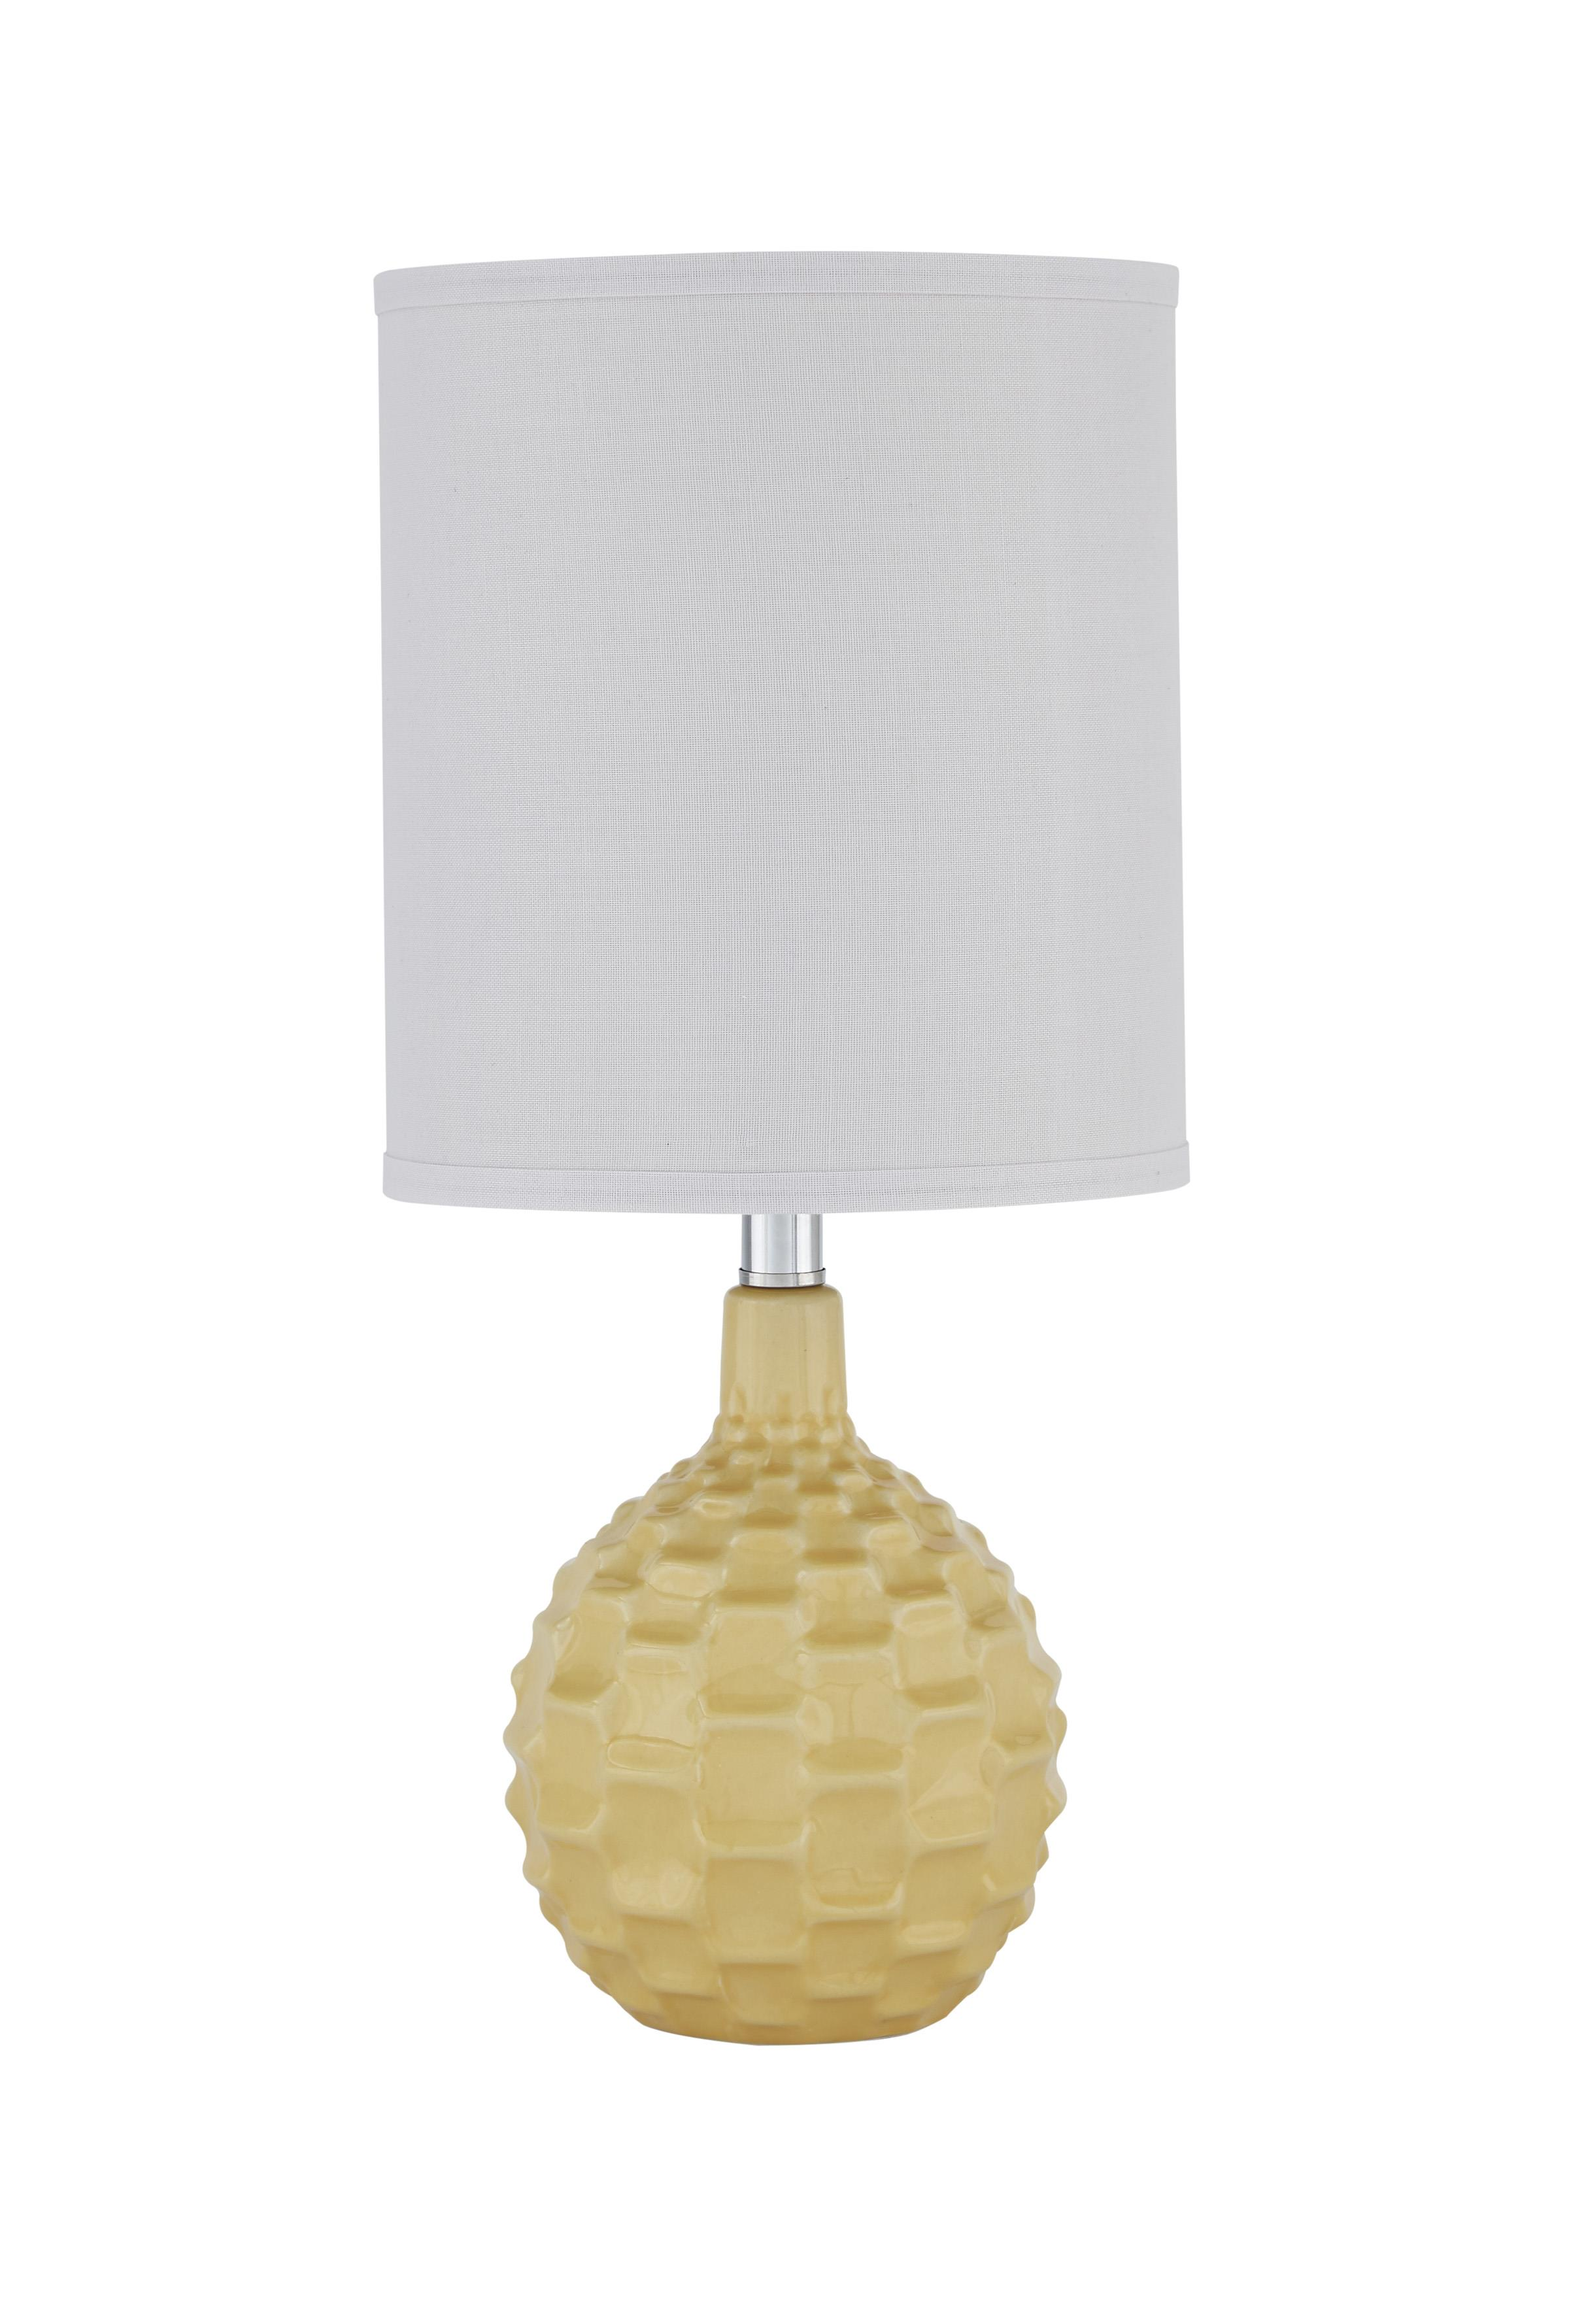 Signature Design by Ashley Lamps - Contemporary Sondre Yellow Ceramic Table Lamp - Item Number: L857434